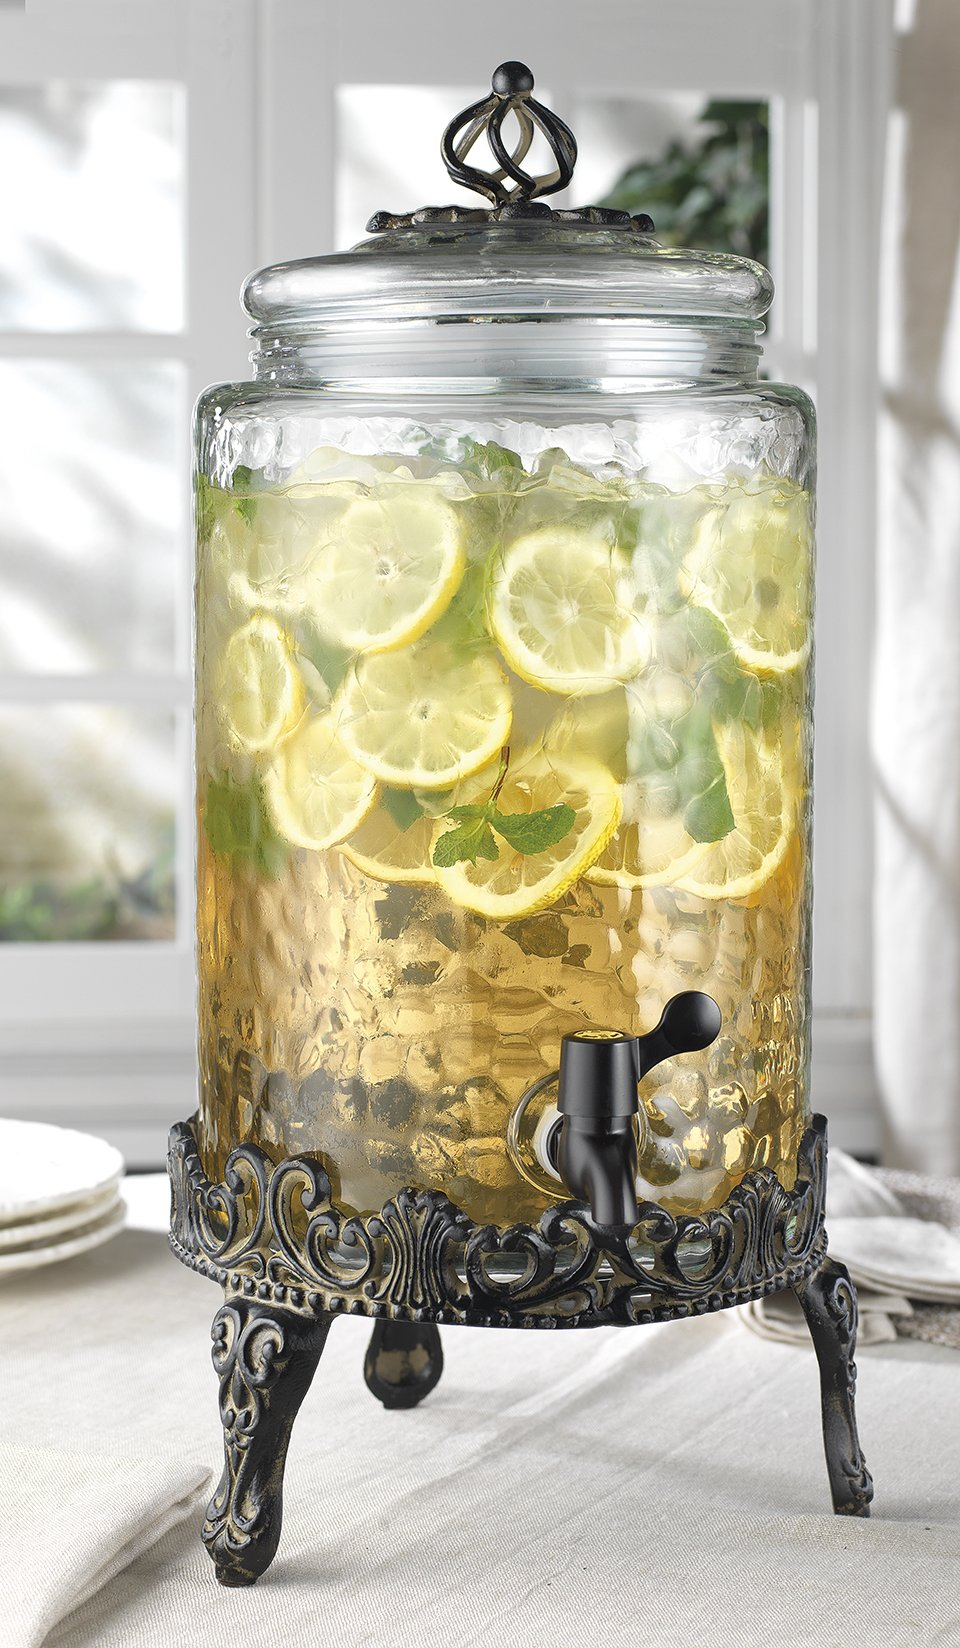 Elegant Home High Quality Hammered Glass Beverage Dispenser - 2.7 Gallon, with Glass Lid and Antique Metal Stand by HC